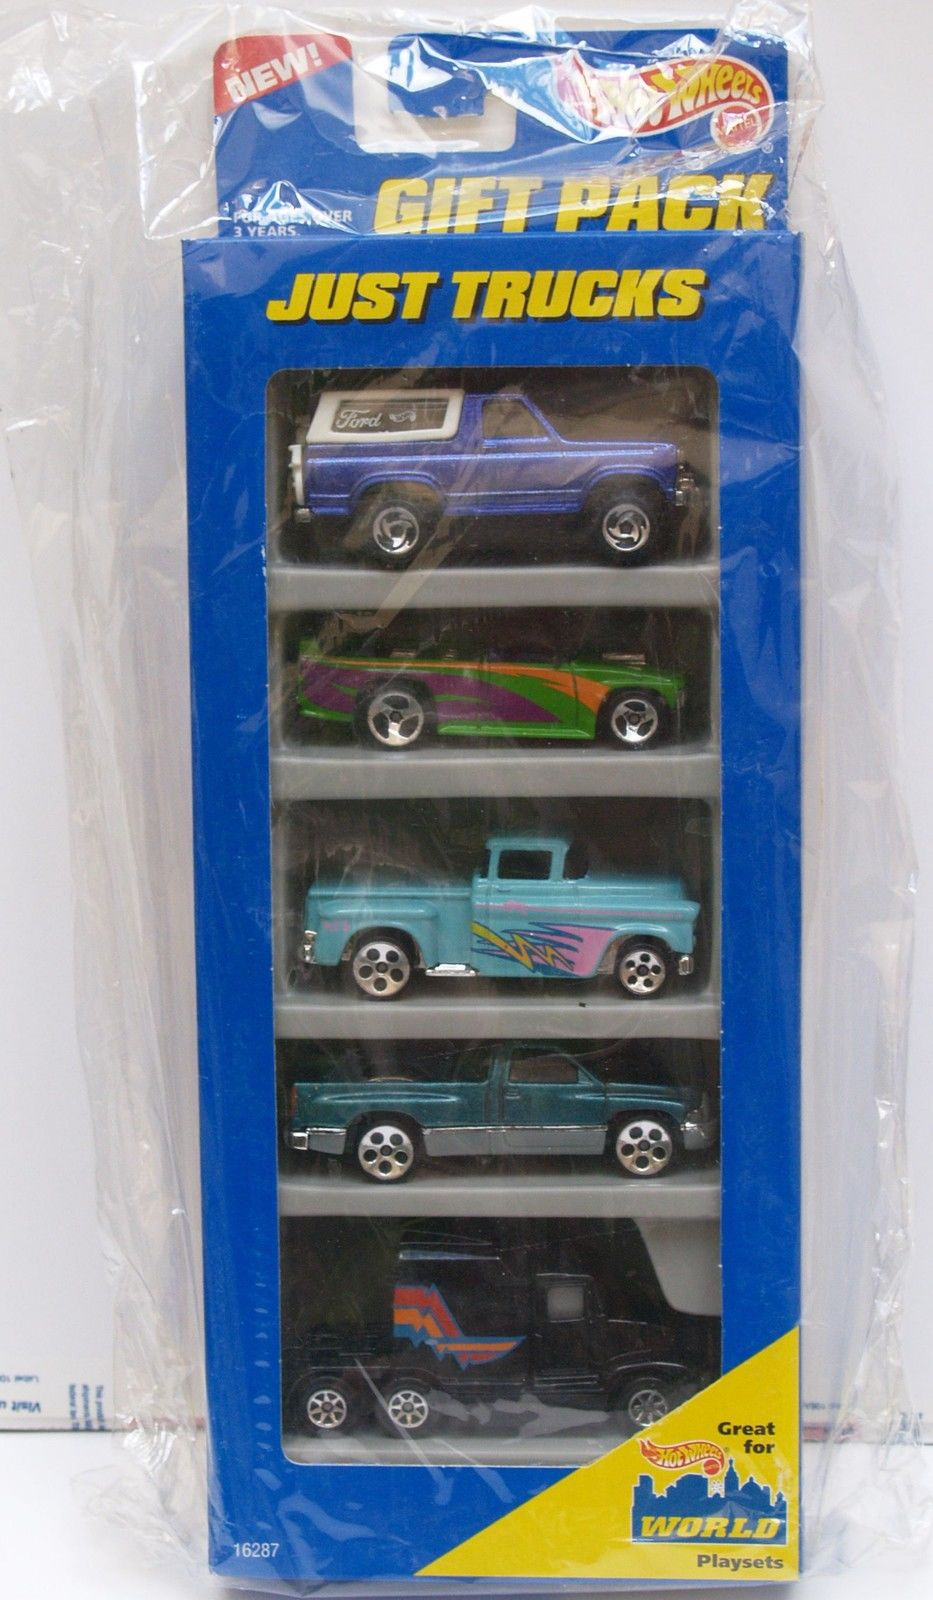 HOT WHEELS 1996 GIFT PACK JUST TRUCKS BRONCO CHEVY DODGE KENWORTH 5 CAR PACK